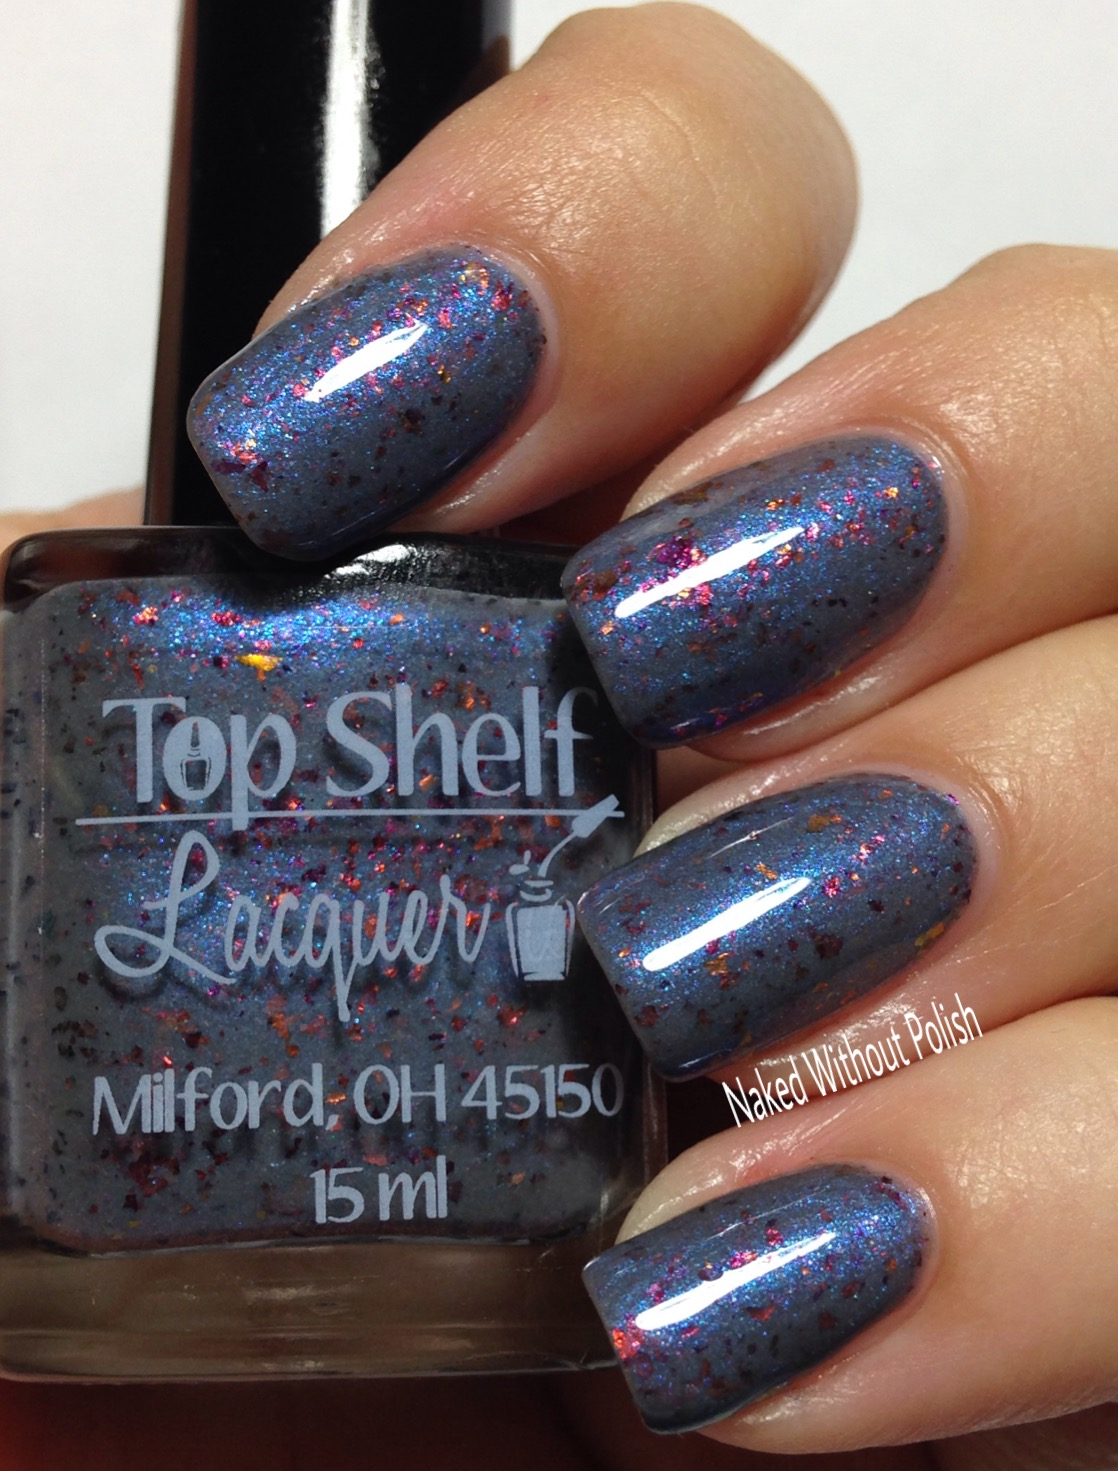 Top-Shelf-Lacquer-The-Bulldog-Smash-11